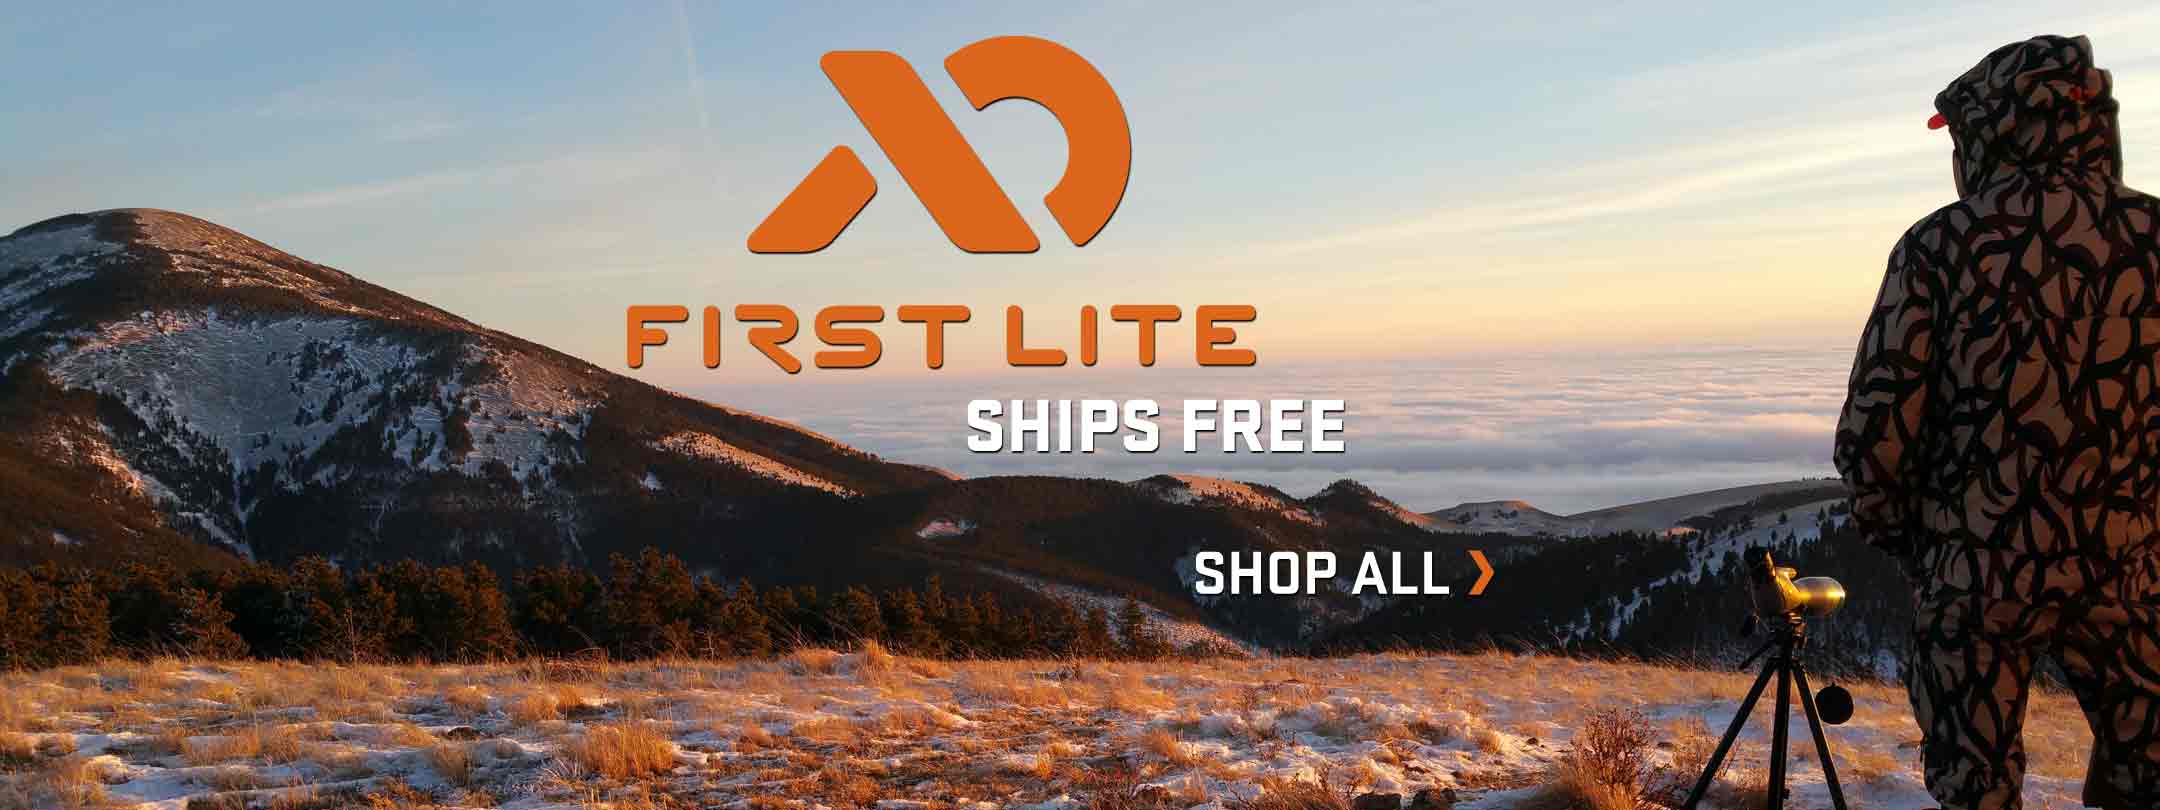 Shop All First Lite & Get Free Shipping